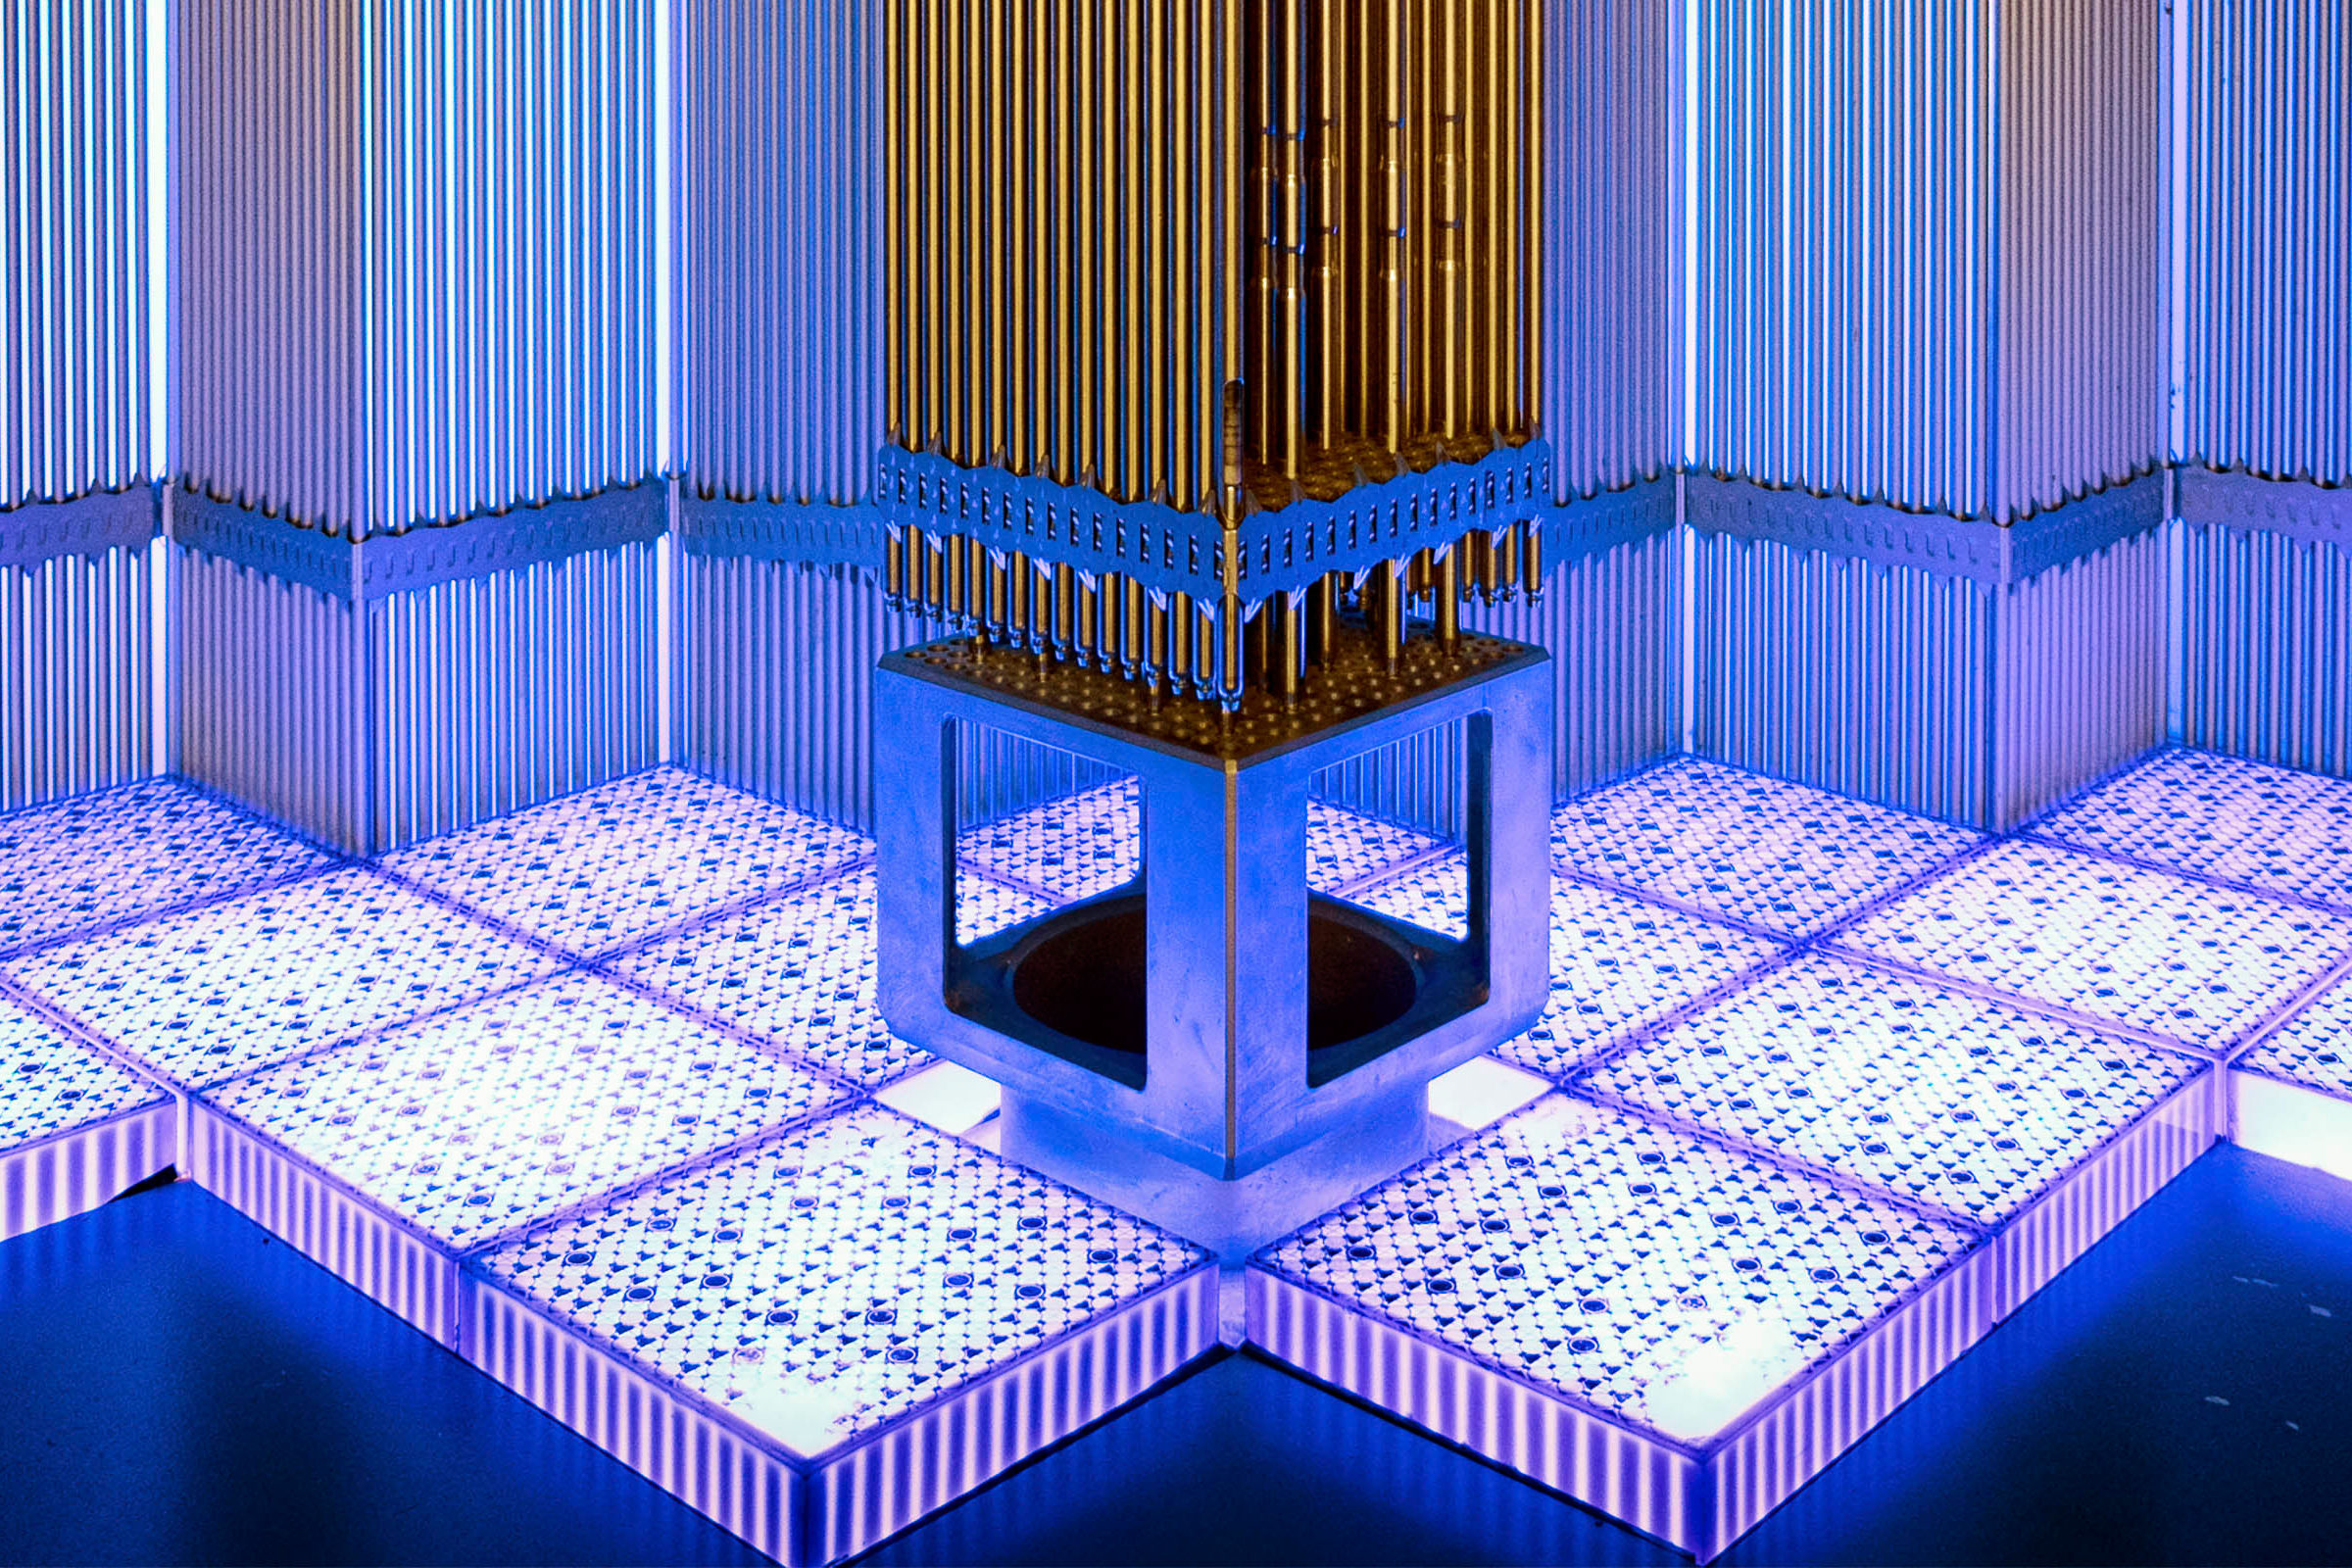 Model of a nuclear fuel assembly. Credit: Getty Images